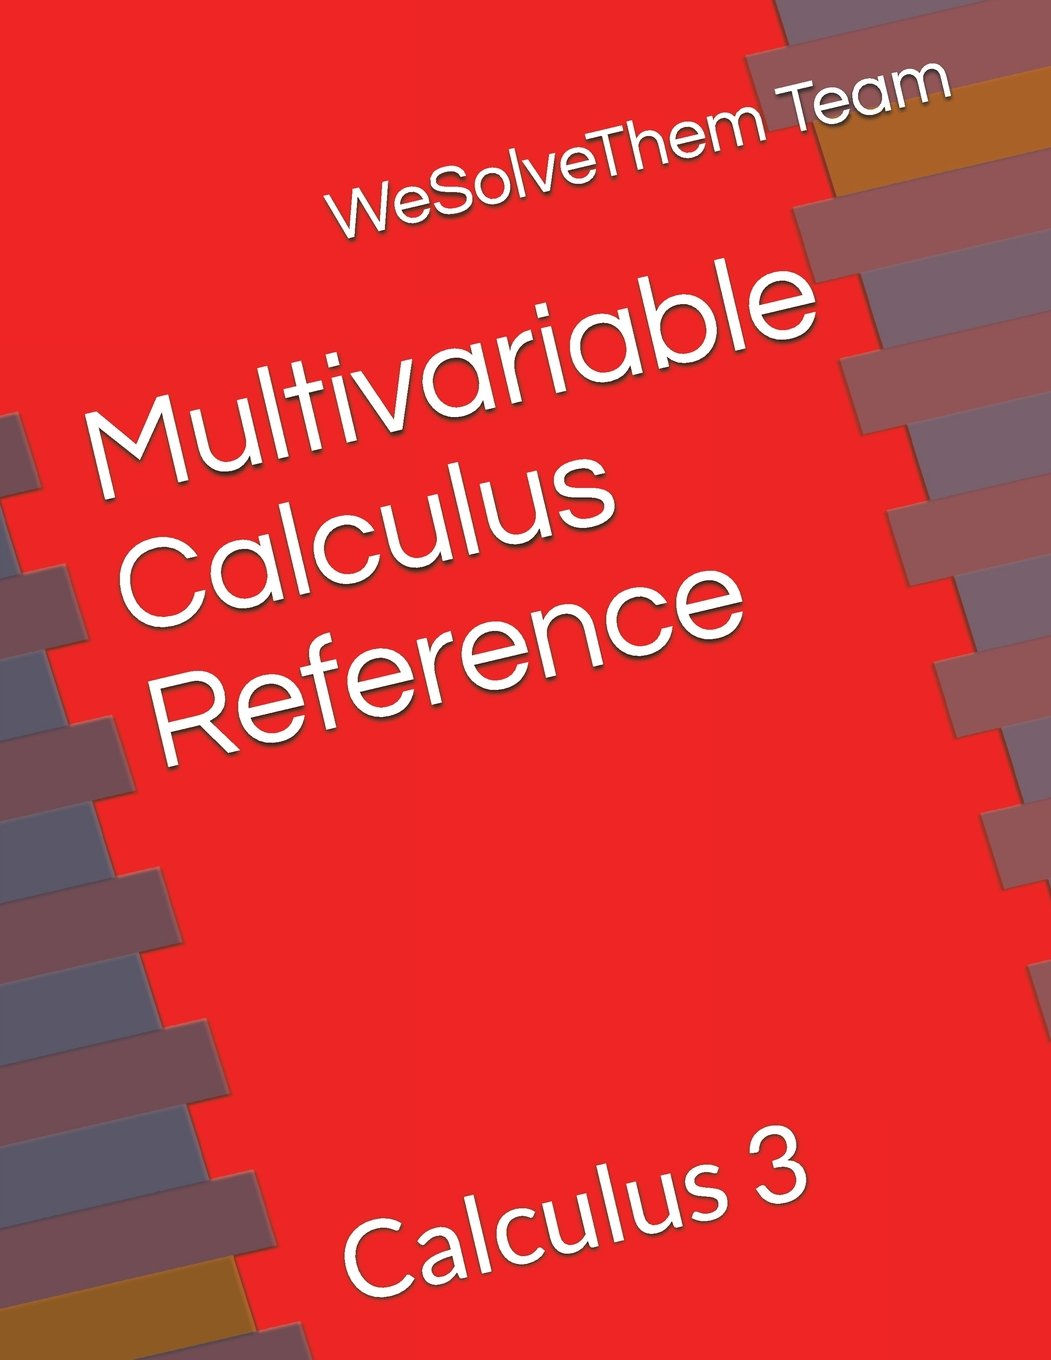 Multivariable Calculus Reference: Calculus 3 Paperback – August 16, 2017.  by WeSolveThem Team ...